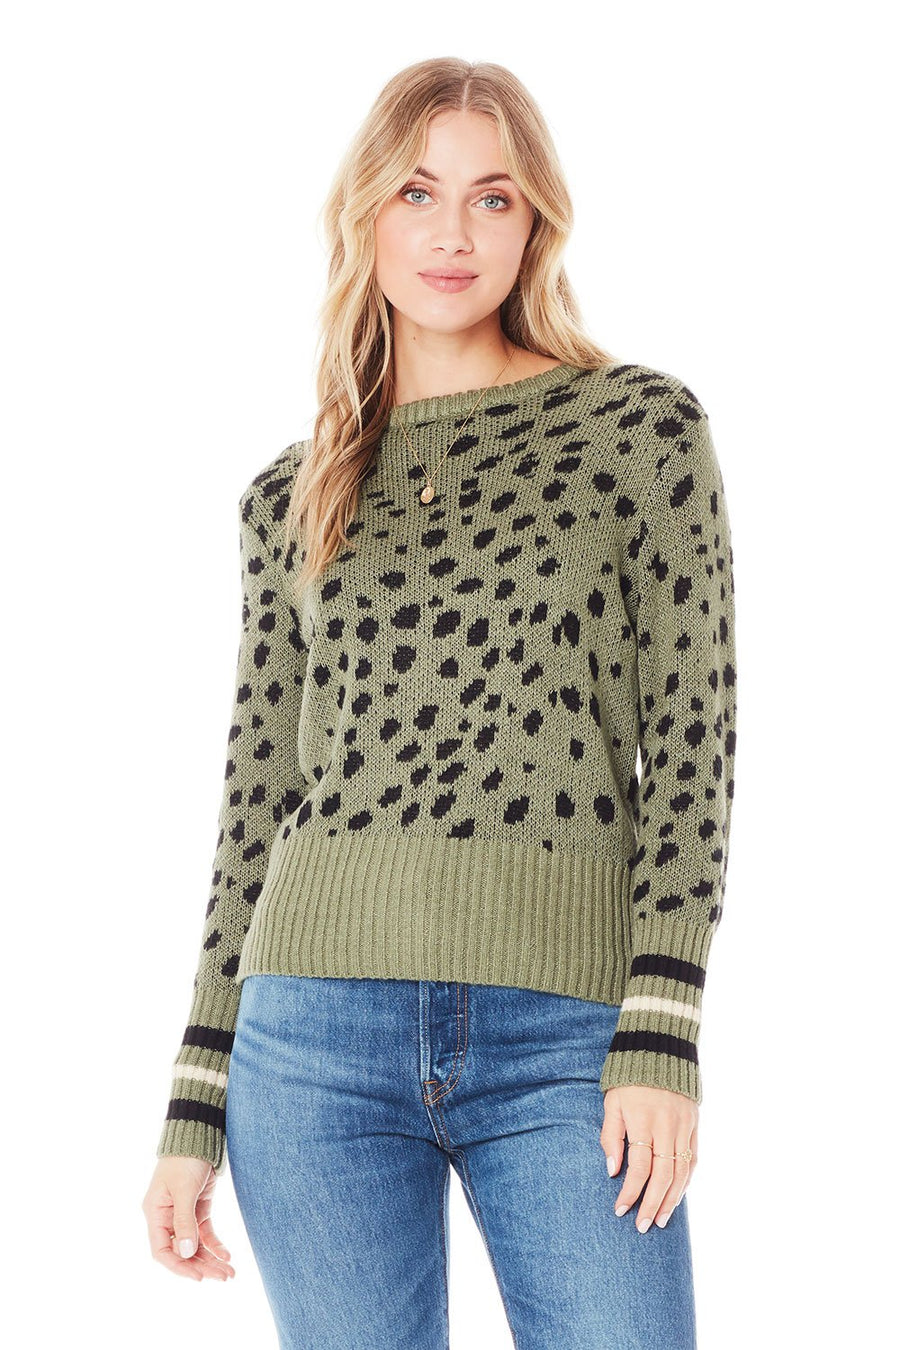 Saltwater Luxe Miles Sweater in Willow